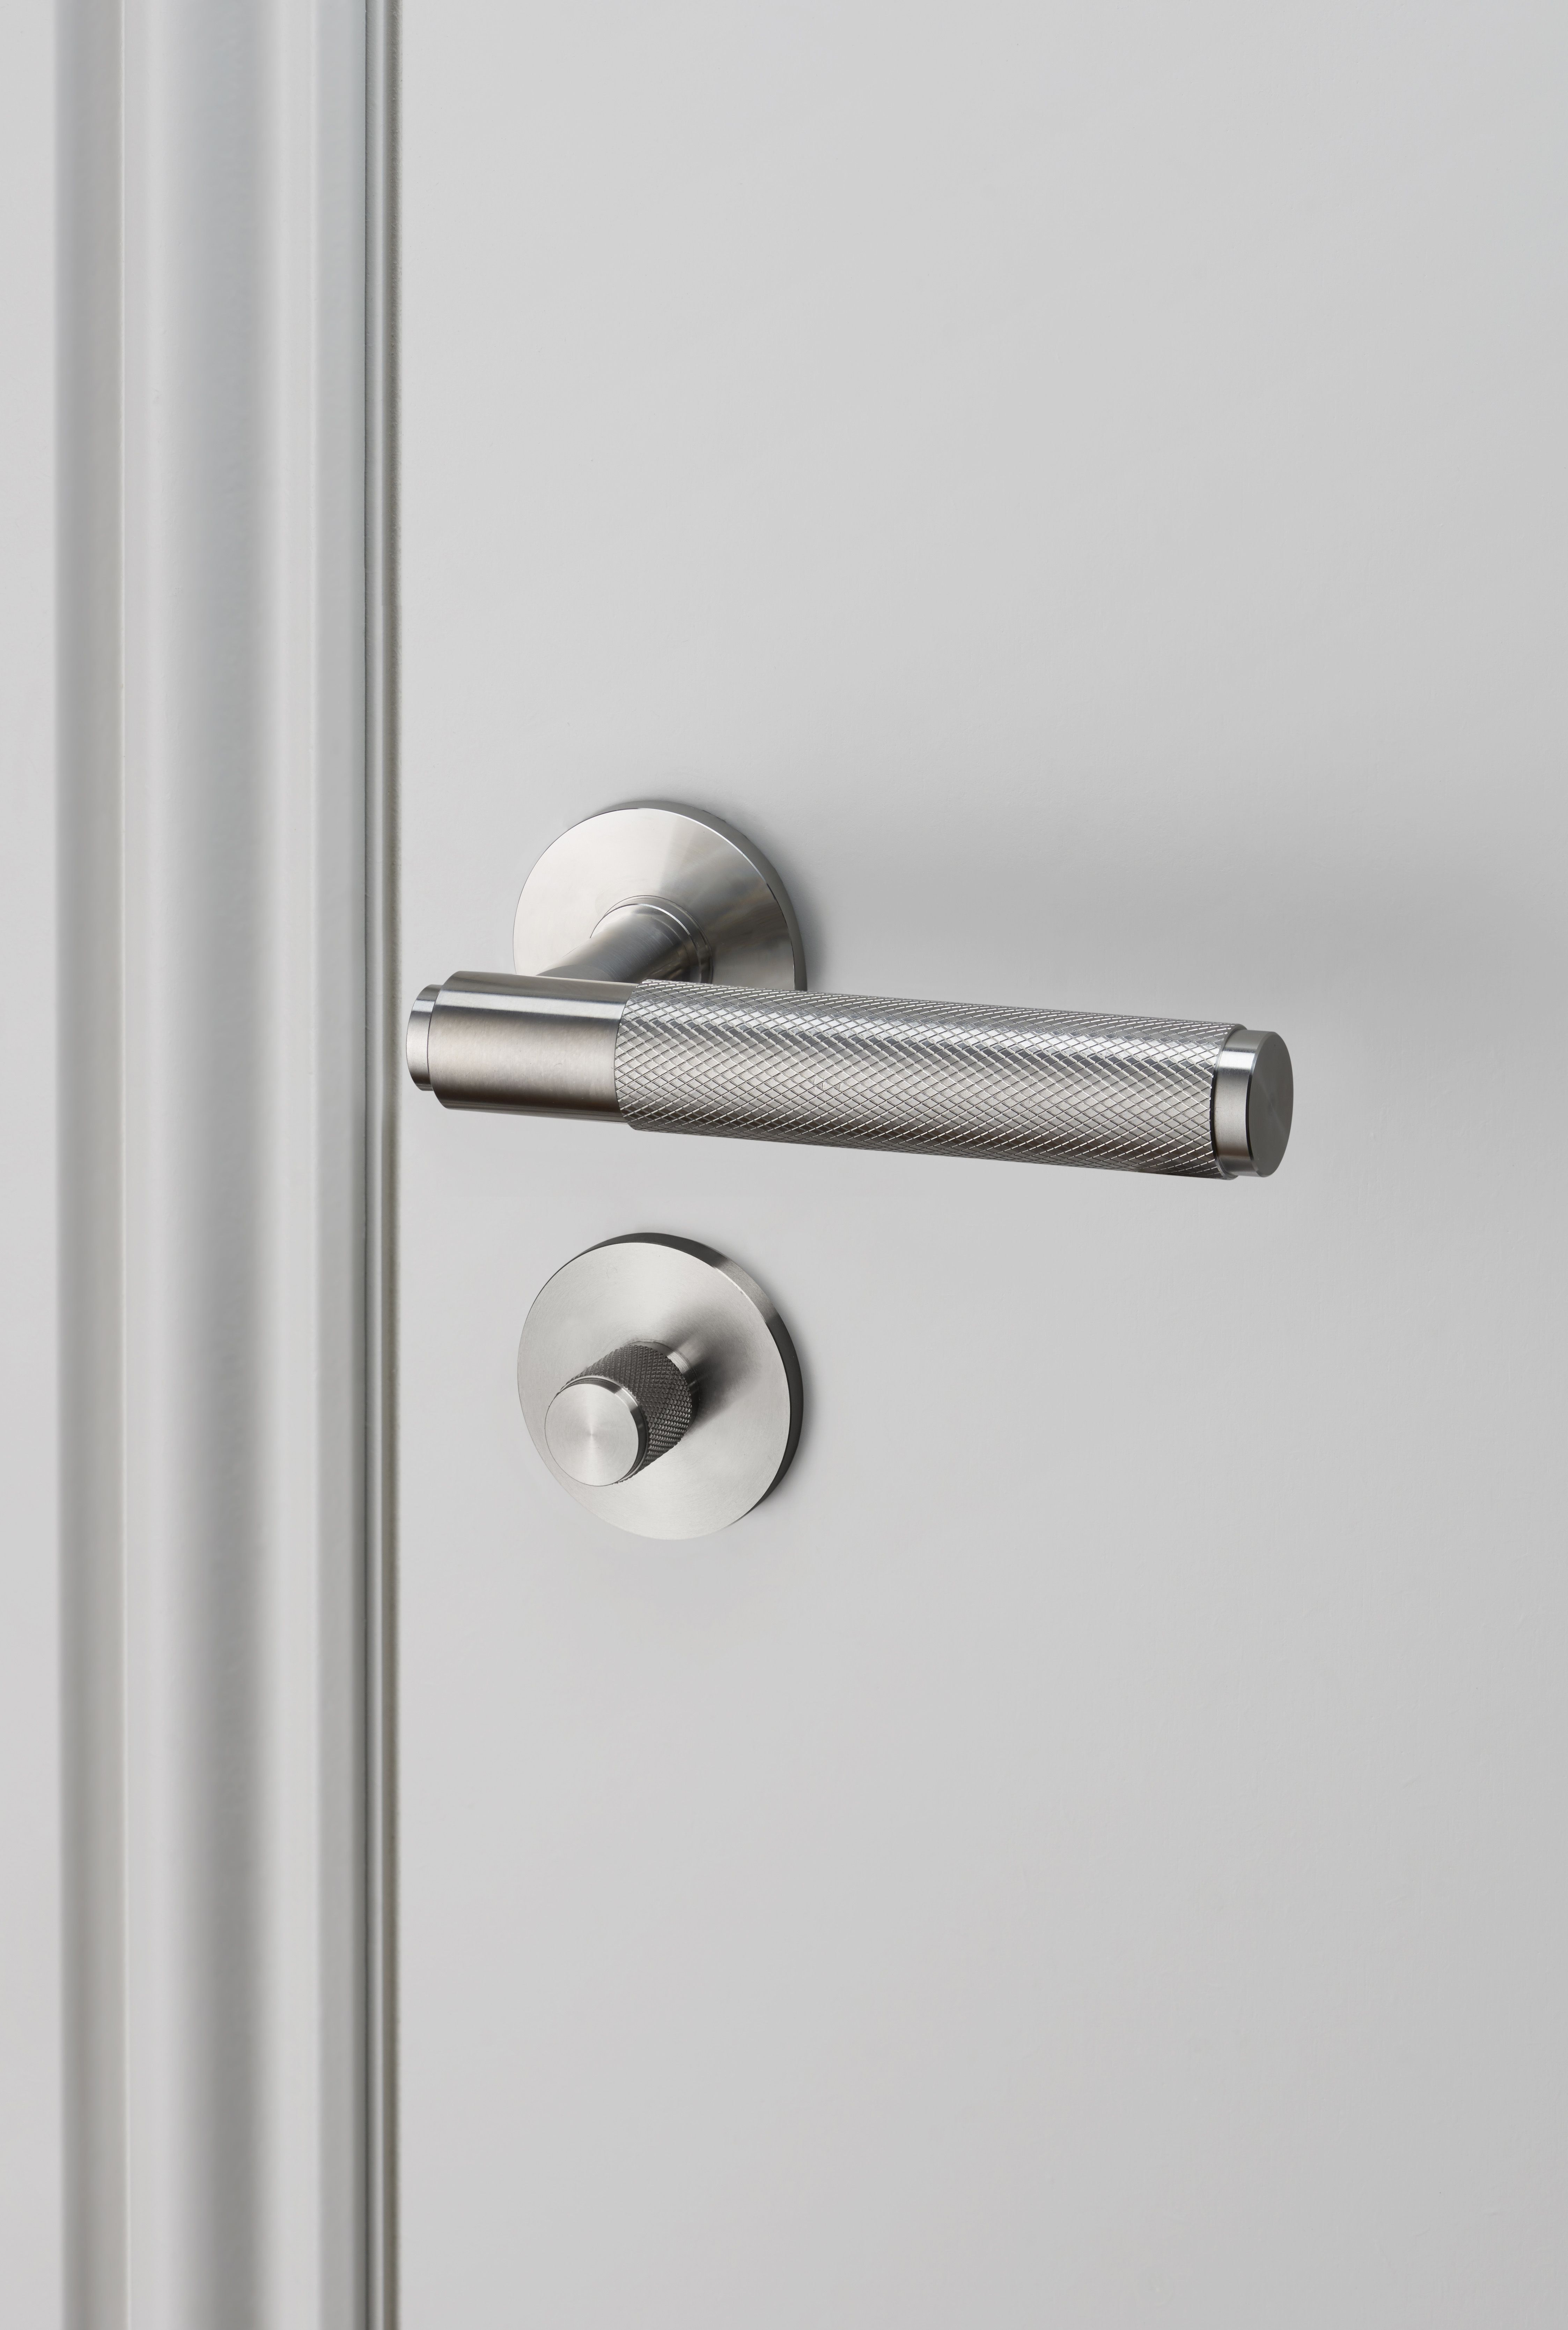 DOOR LEVER HANDLE / STEEL And THUMBTURN LOCK / STEEL By Buster + Punch.